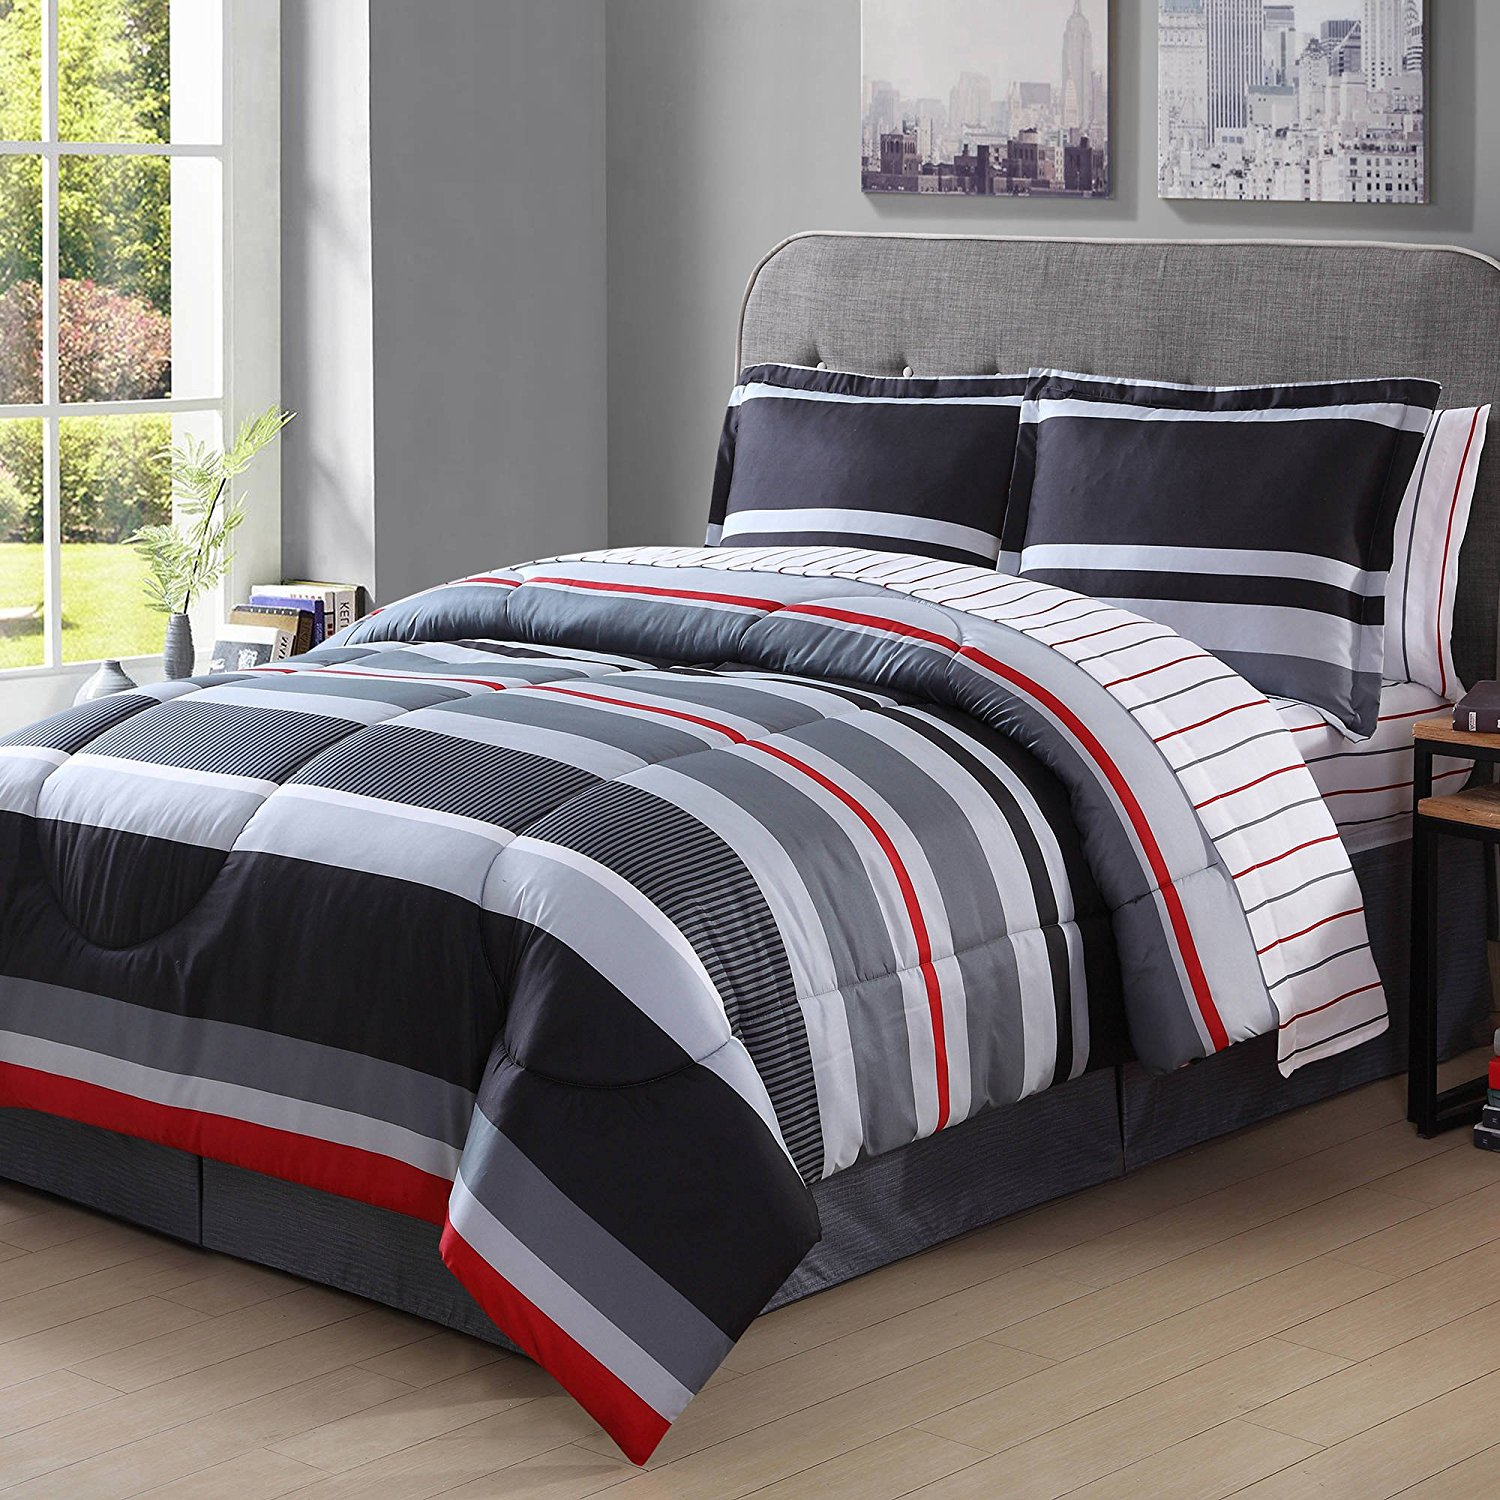 8 Piece Grey Red Off White Boys Rugby Stripes King Comforter Set With Sheets, Beautiful Horizontal Sports Striped, Reversible Black Platinum Gray Striped Kids Bedding For Bedroom, Microfibre Polyester